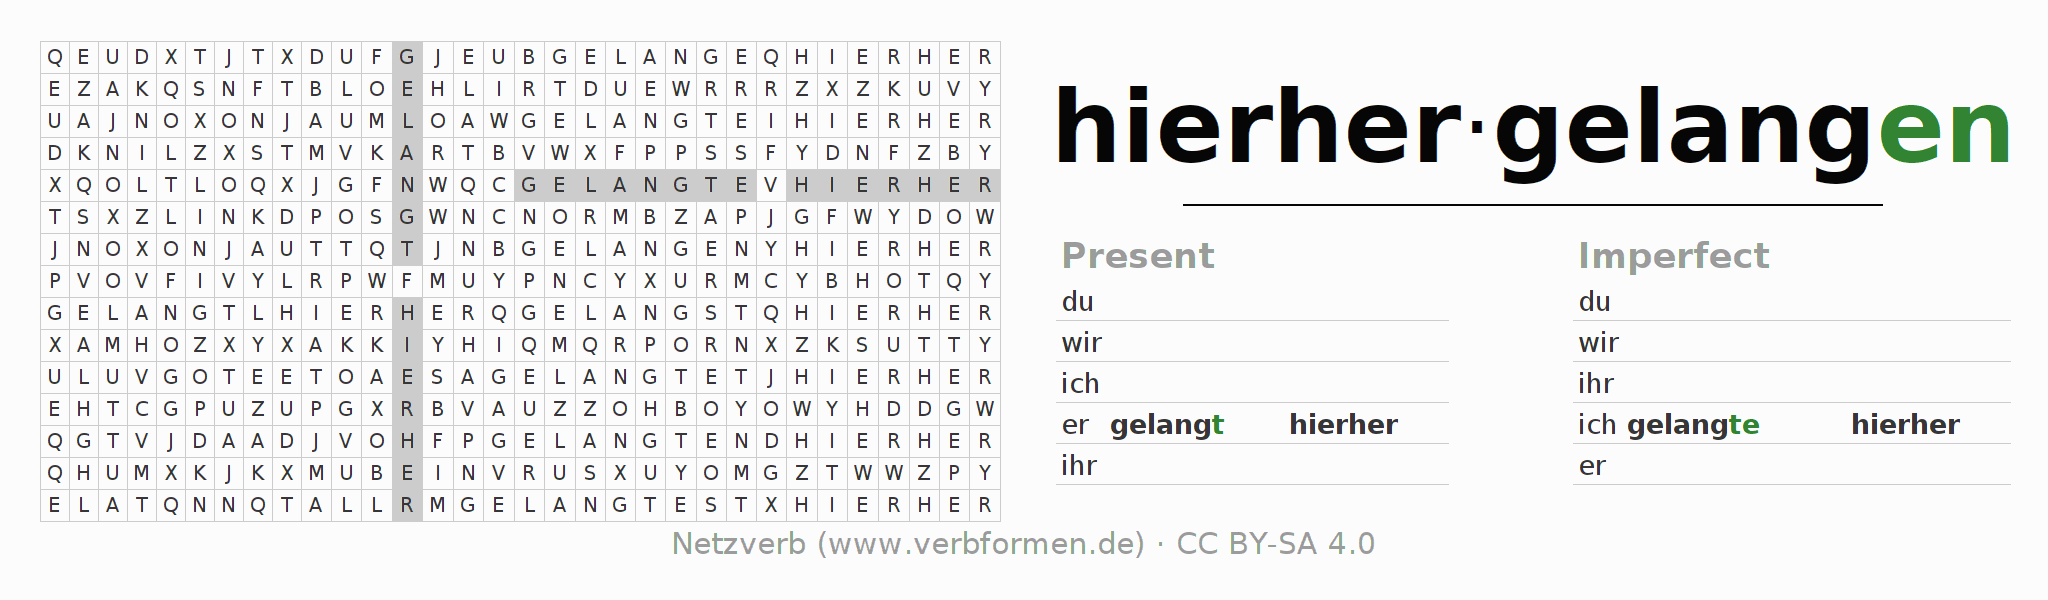 Word search puzzle for the conjugation of the verb hierhergelangen